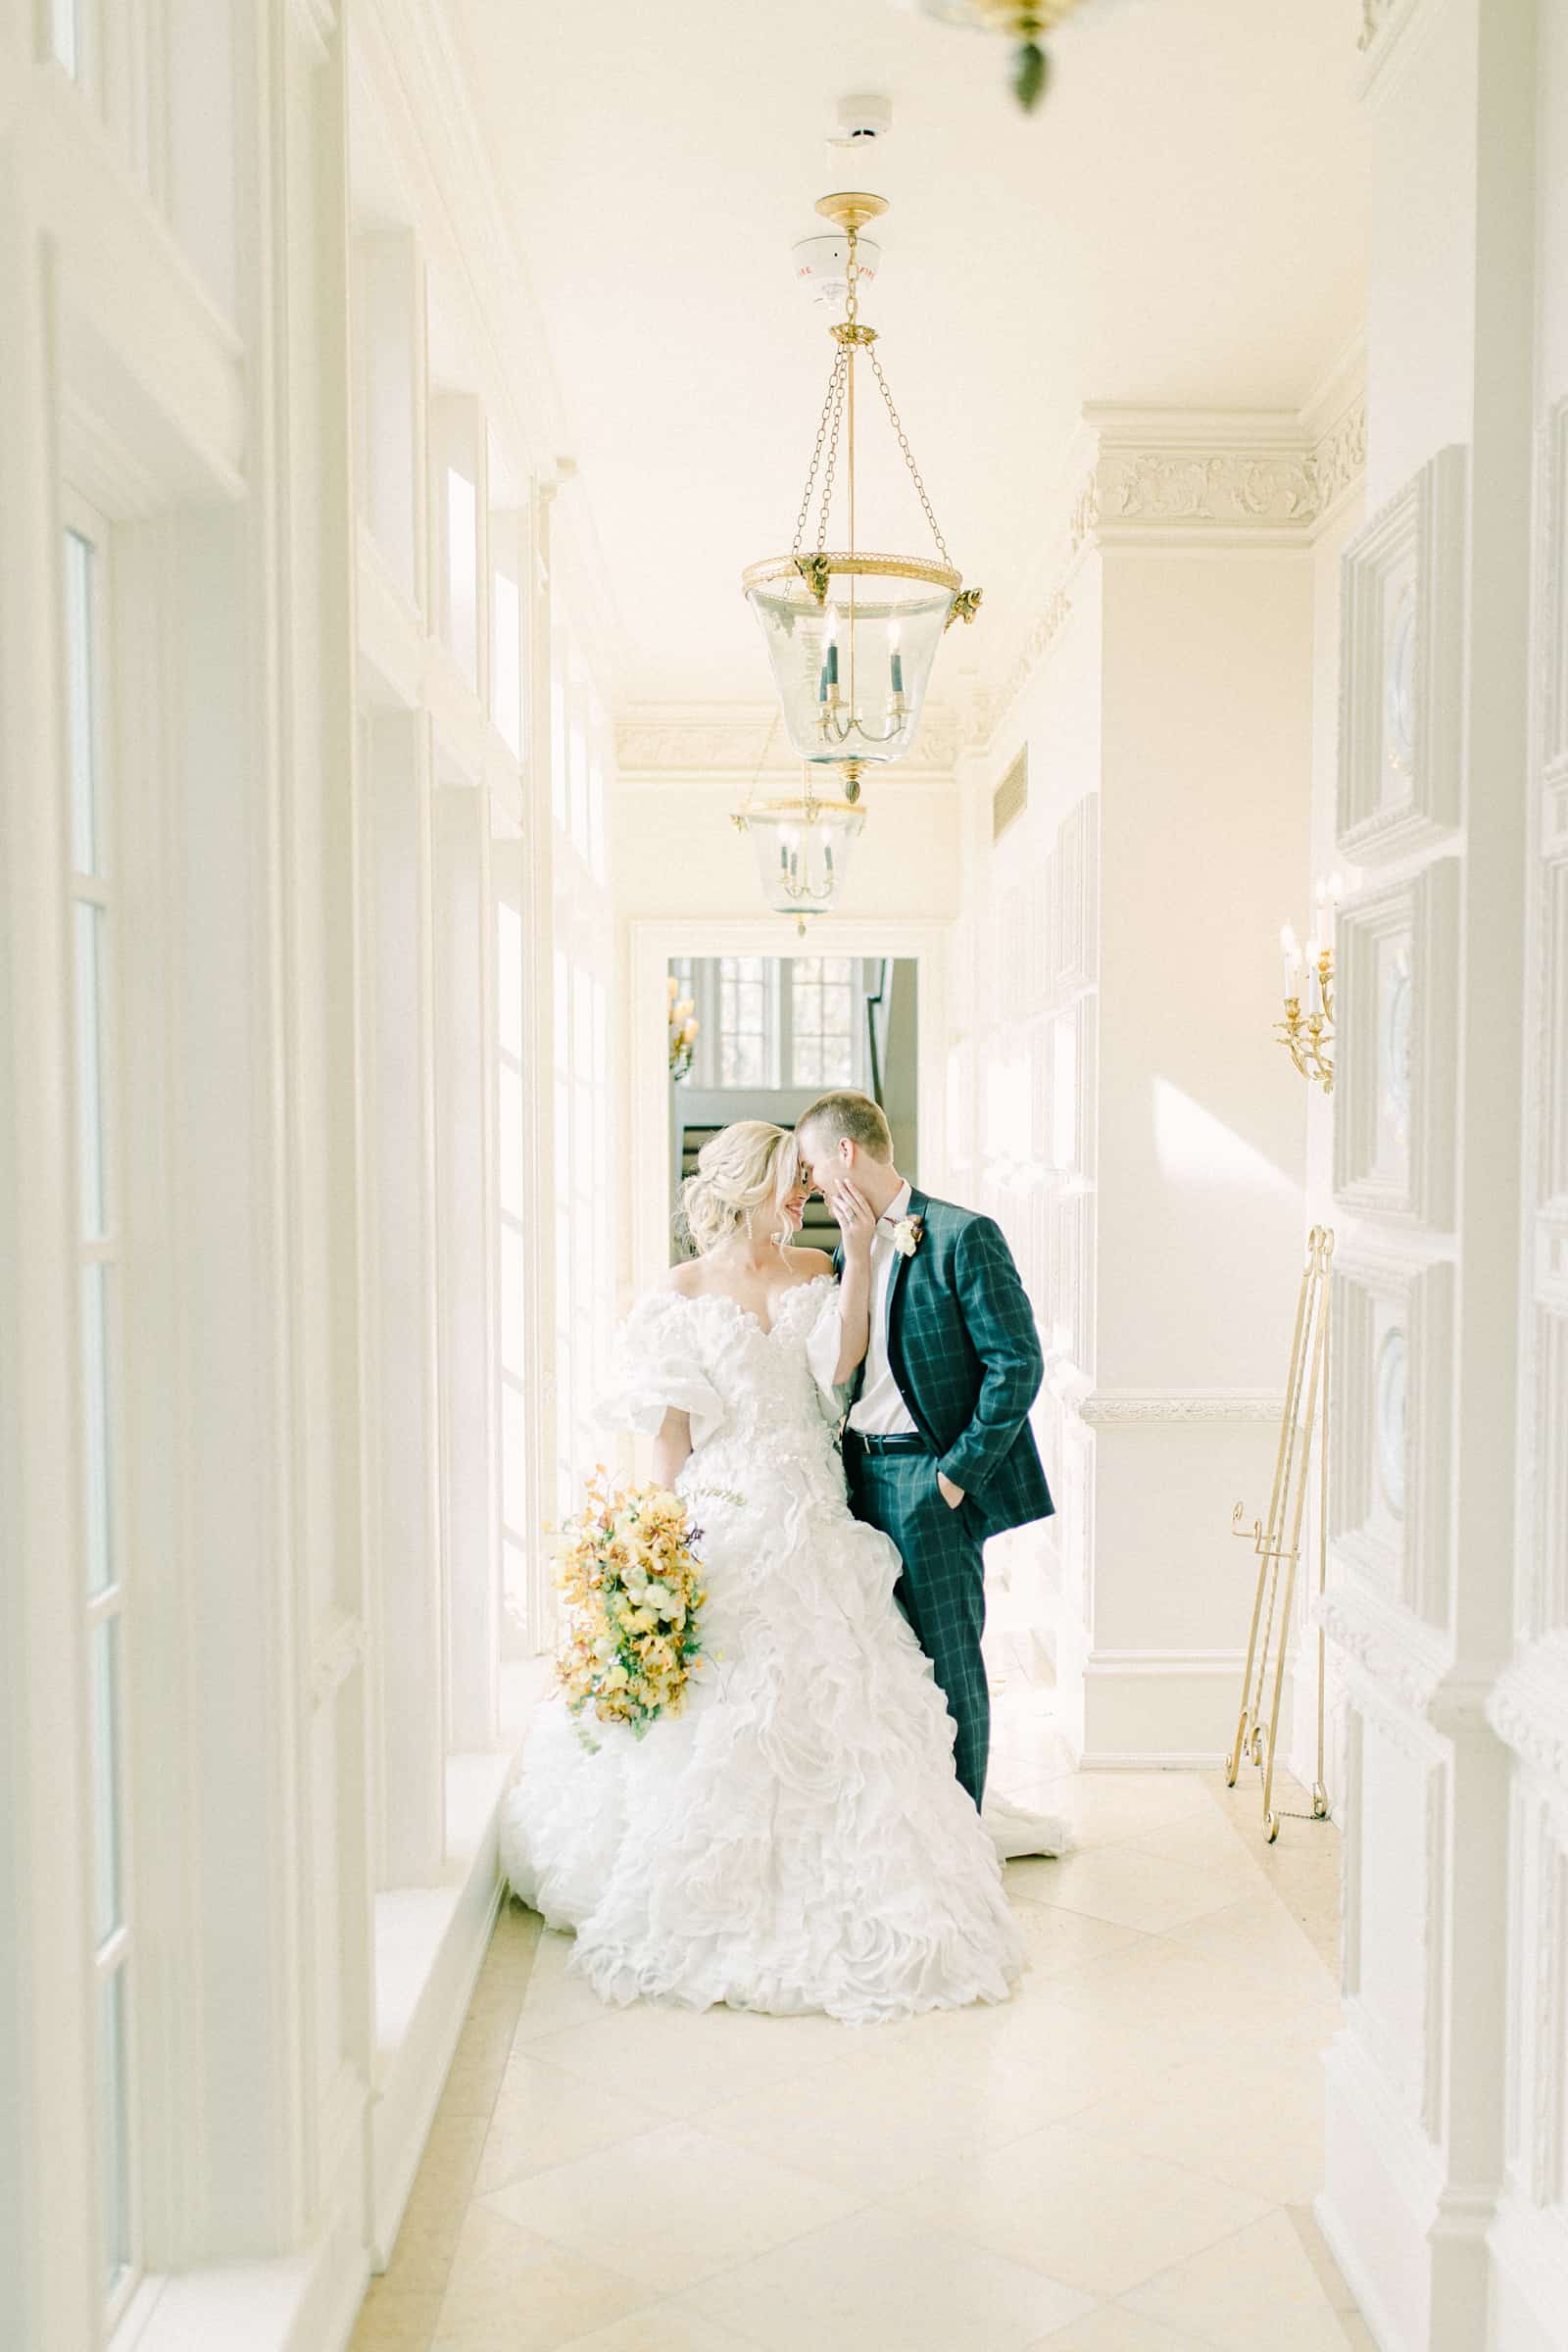 Bride and groom smile in white hallway at European destination wedding venue